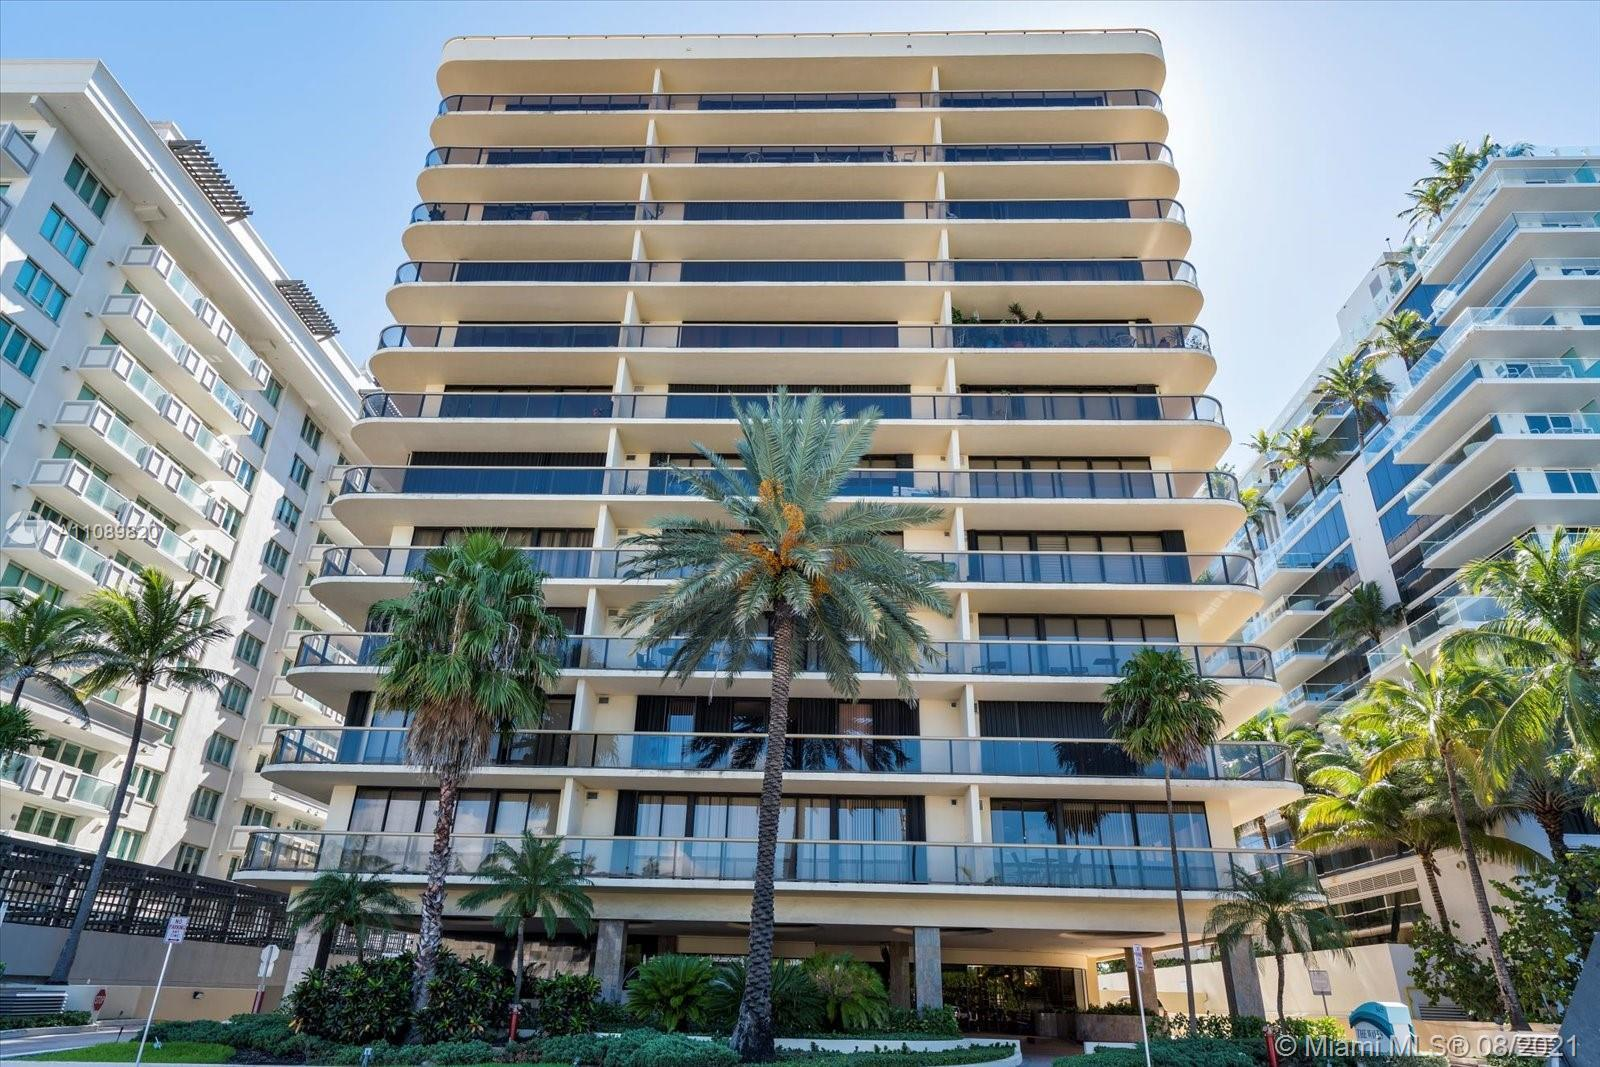 Direct Oceanfront Condo! Location! Location! Location! Welcome to The Waves Condominium a full-servi